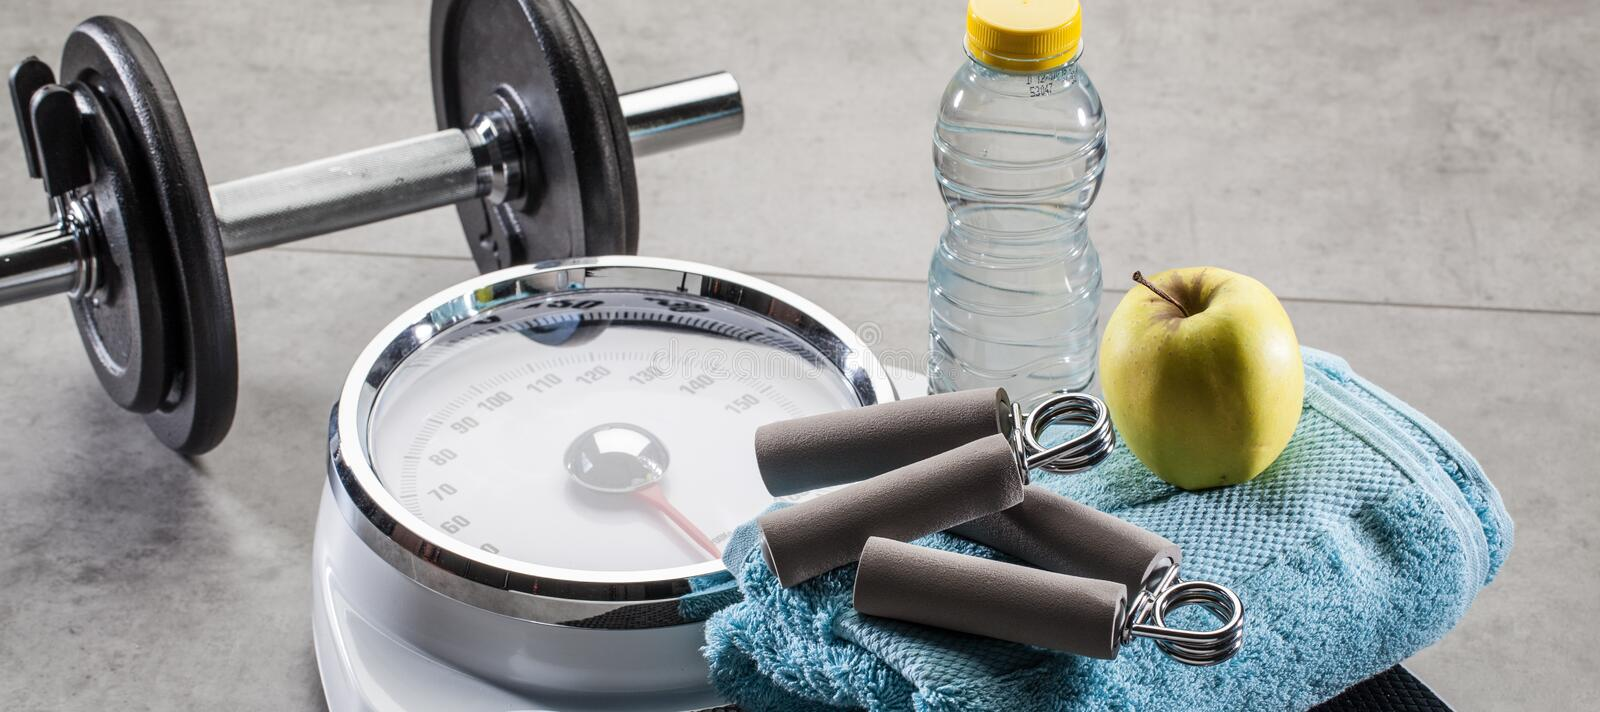 Scales for fitness, workout and weight control on gym floor. Scales for fitness, workout and weight control with hand grips and dumbbells, bottle of water and stock photography